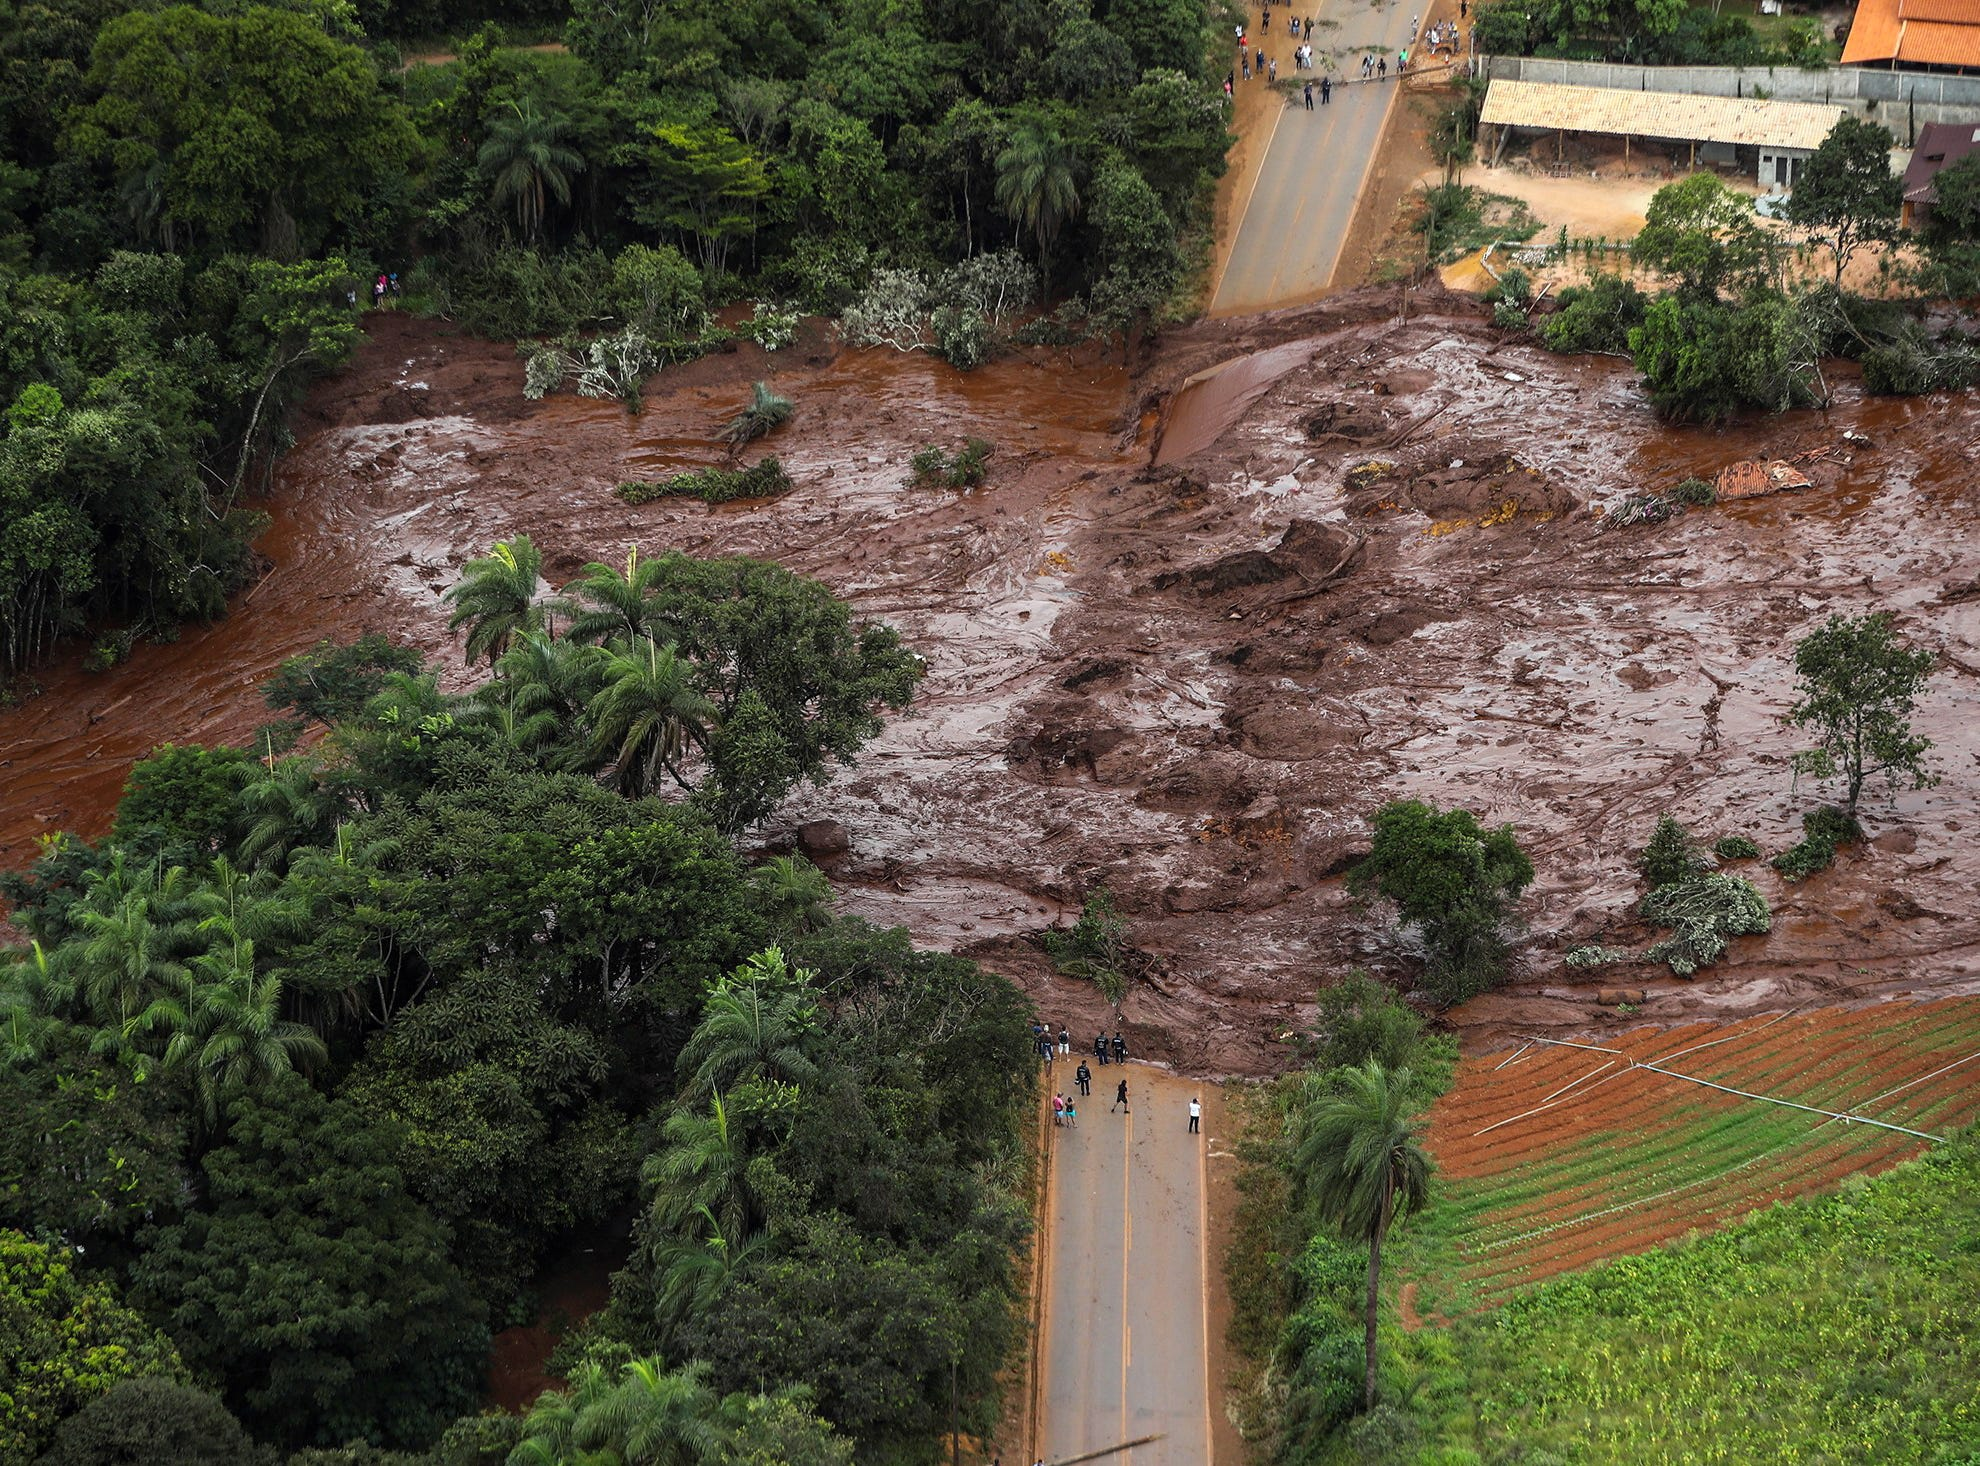 Mud and waste cover a road after a dam spill in Brumadinho, Minas Gerais, Brazil on Jan. 26, 2019. At least nine people have died and 300 are missing after a tailings dam burst at the Feijao mine in southeastern Brazil owned by Vale, the world's largest iron-ore producer, the Minas Gerais state government said. The dam in Brumadinho near Belo Horizonte broke on January 25 at around mid-day, unleashing a river of sludge that destroyed some nearby houses.